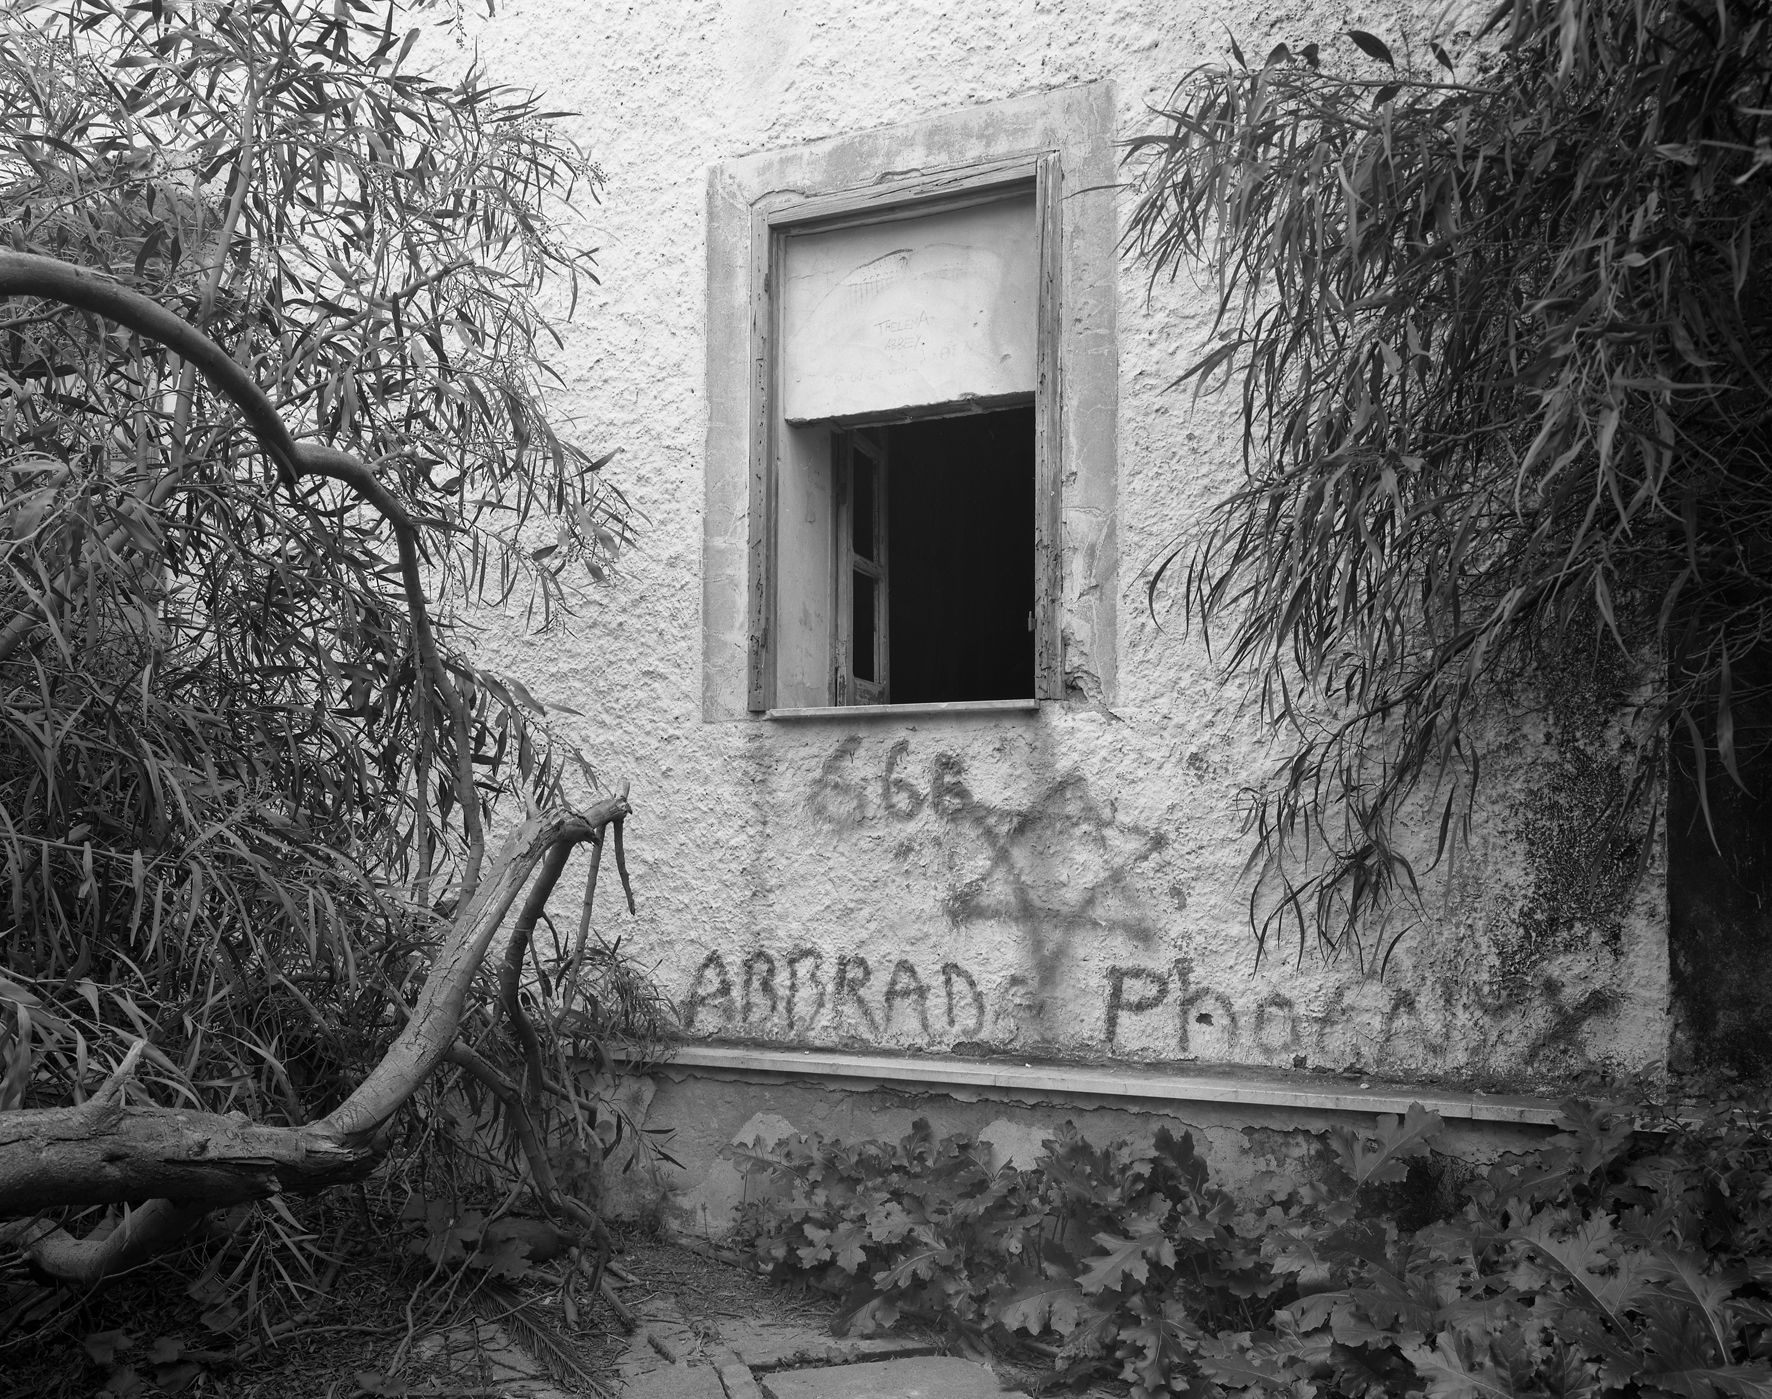 The Abbey of Thelema #4, 2005,  gelatin silver print,  28 ¾ x 33 ½ inches